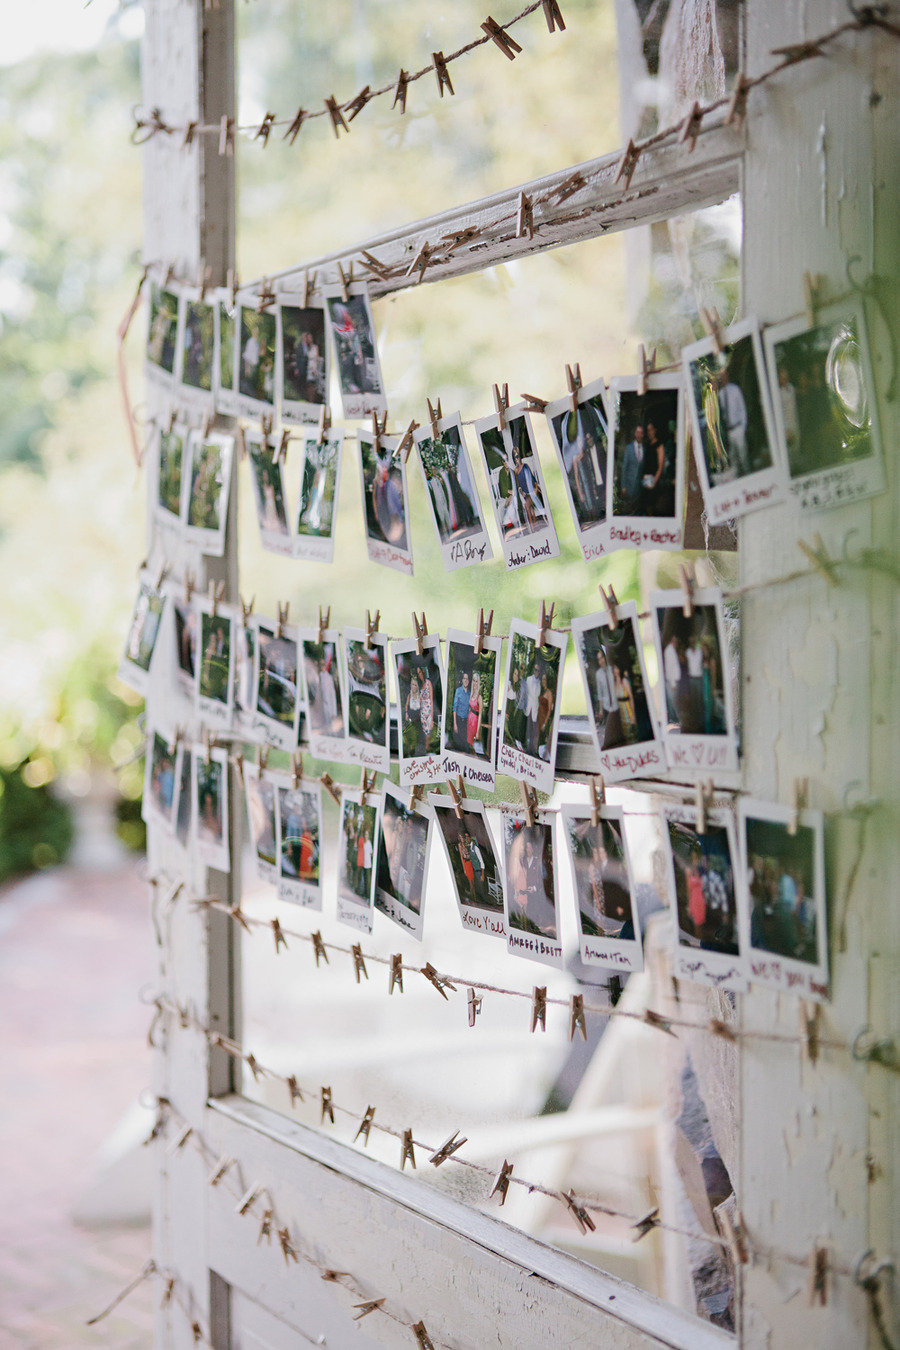 Polaroids hanging from thread